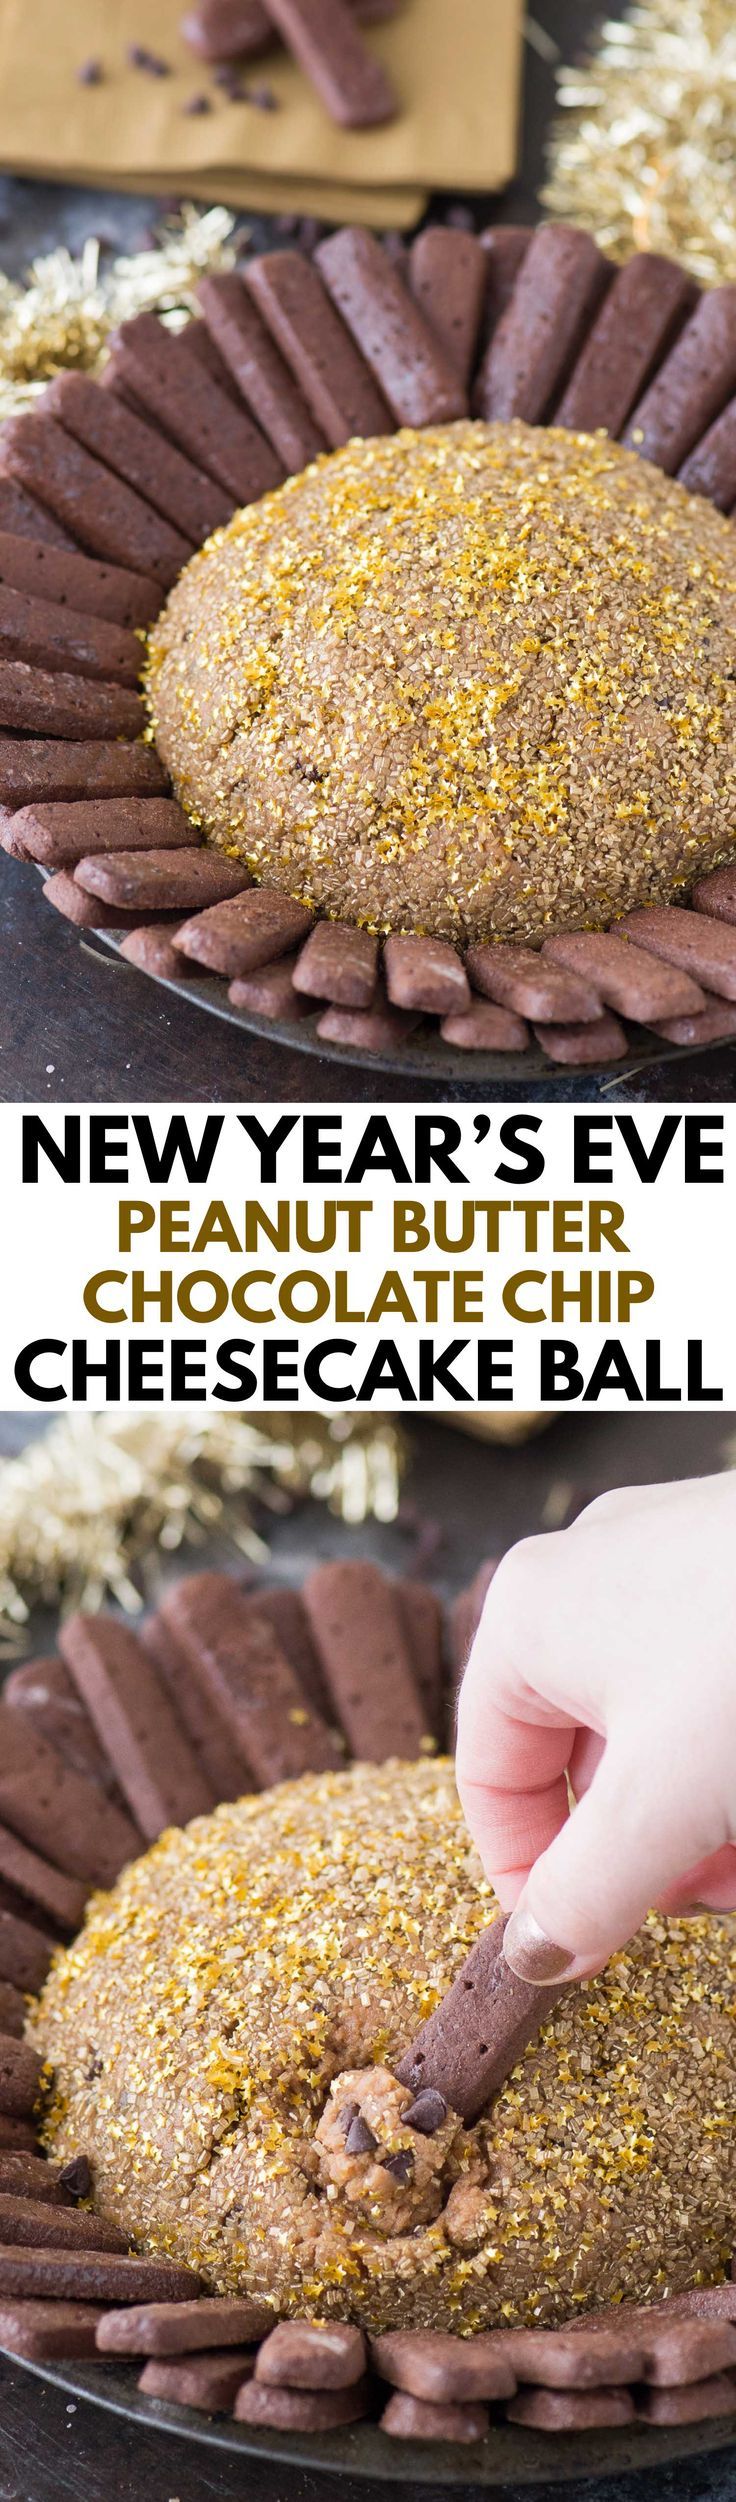 A fun New Year's Eve peanut butter chocolate chip cheesecake ball! This is a kid friendly New Year's Eve recipe!